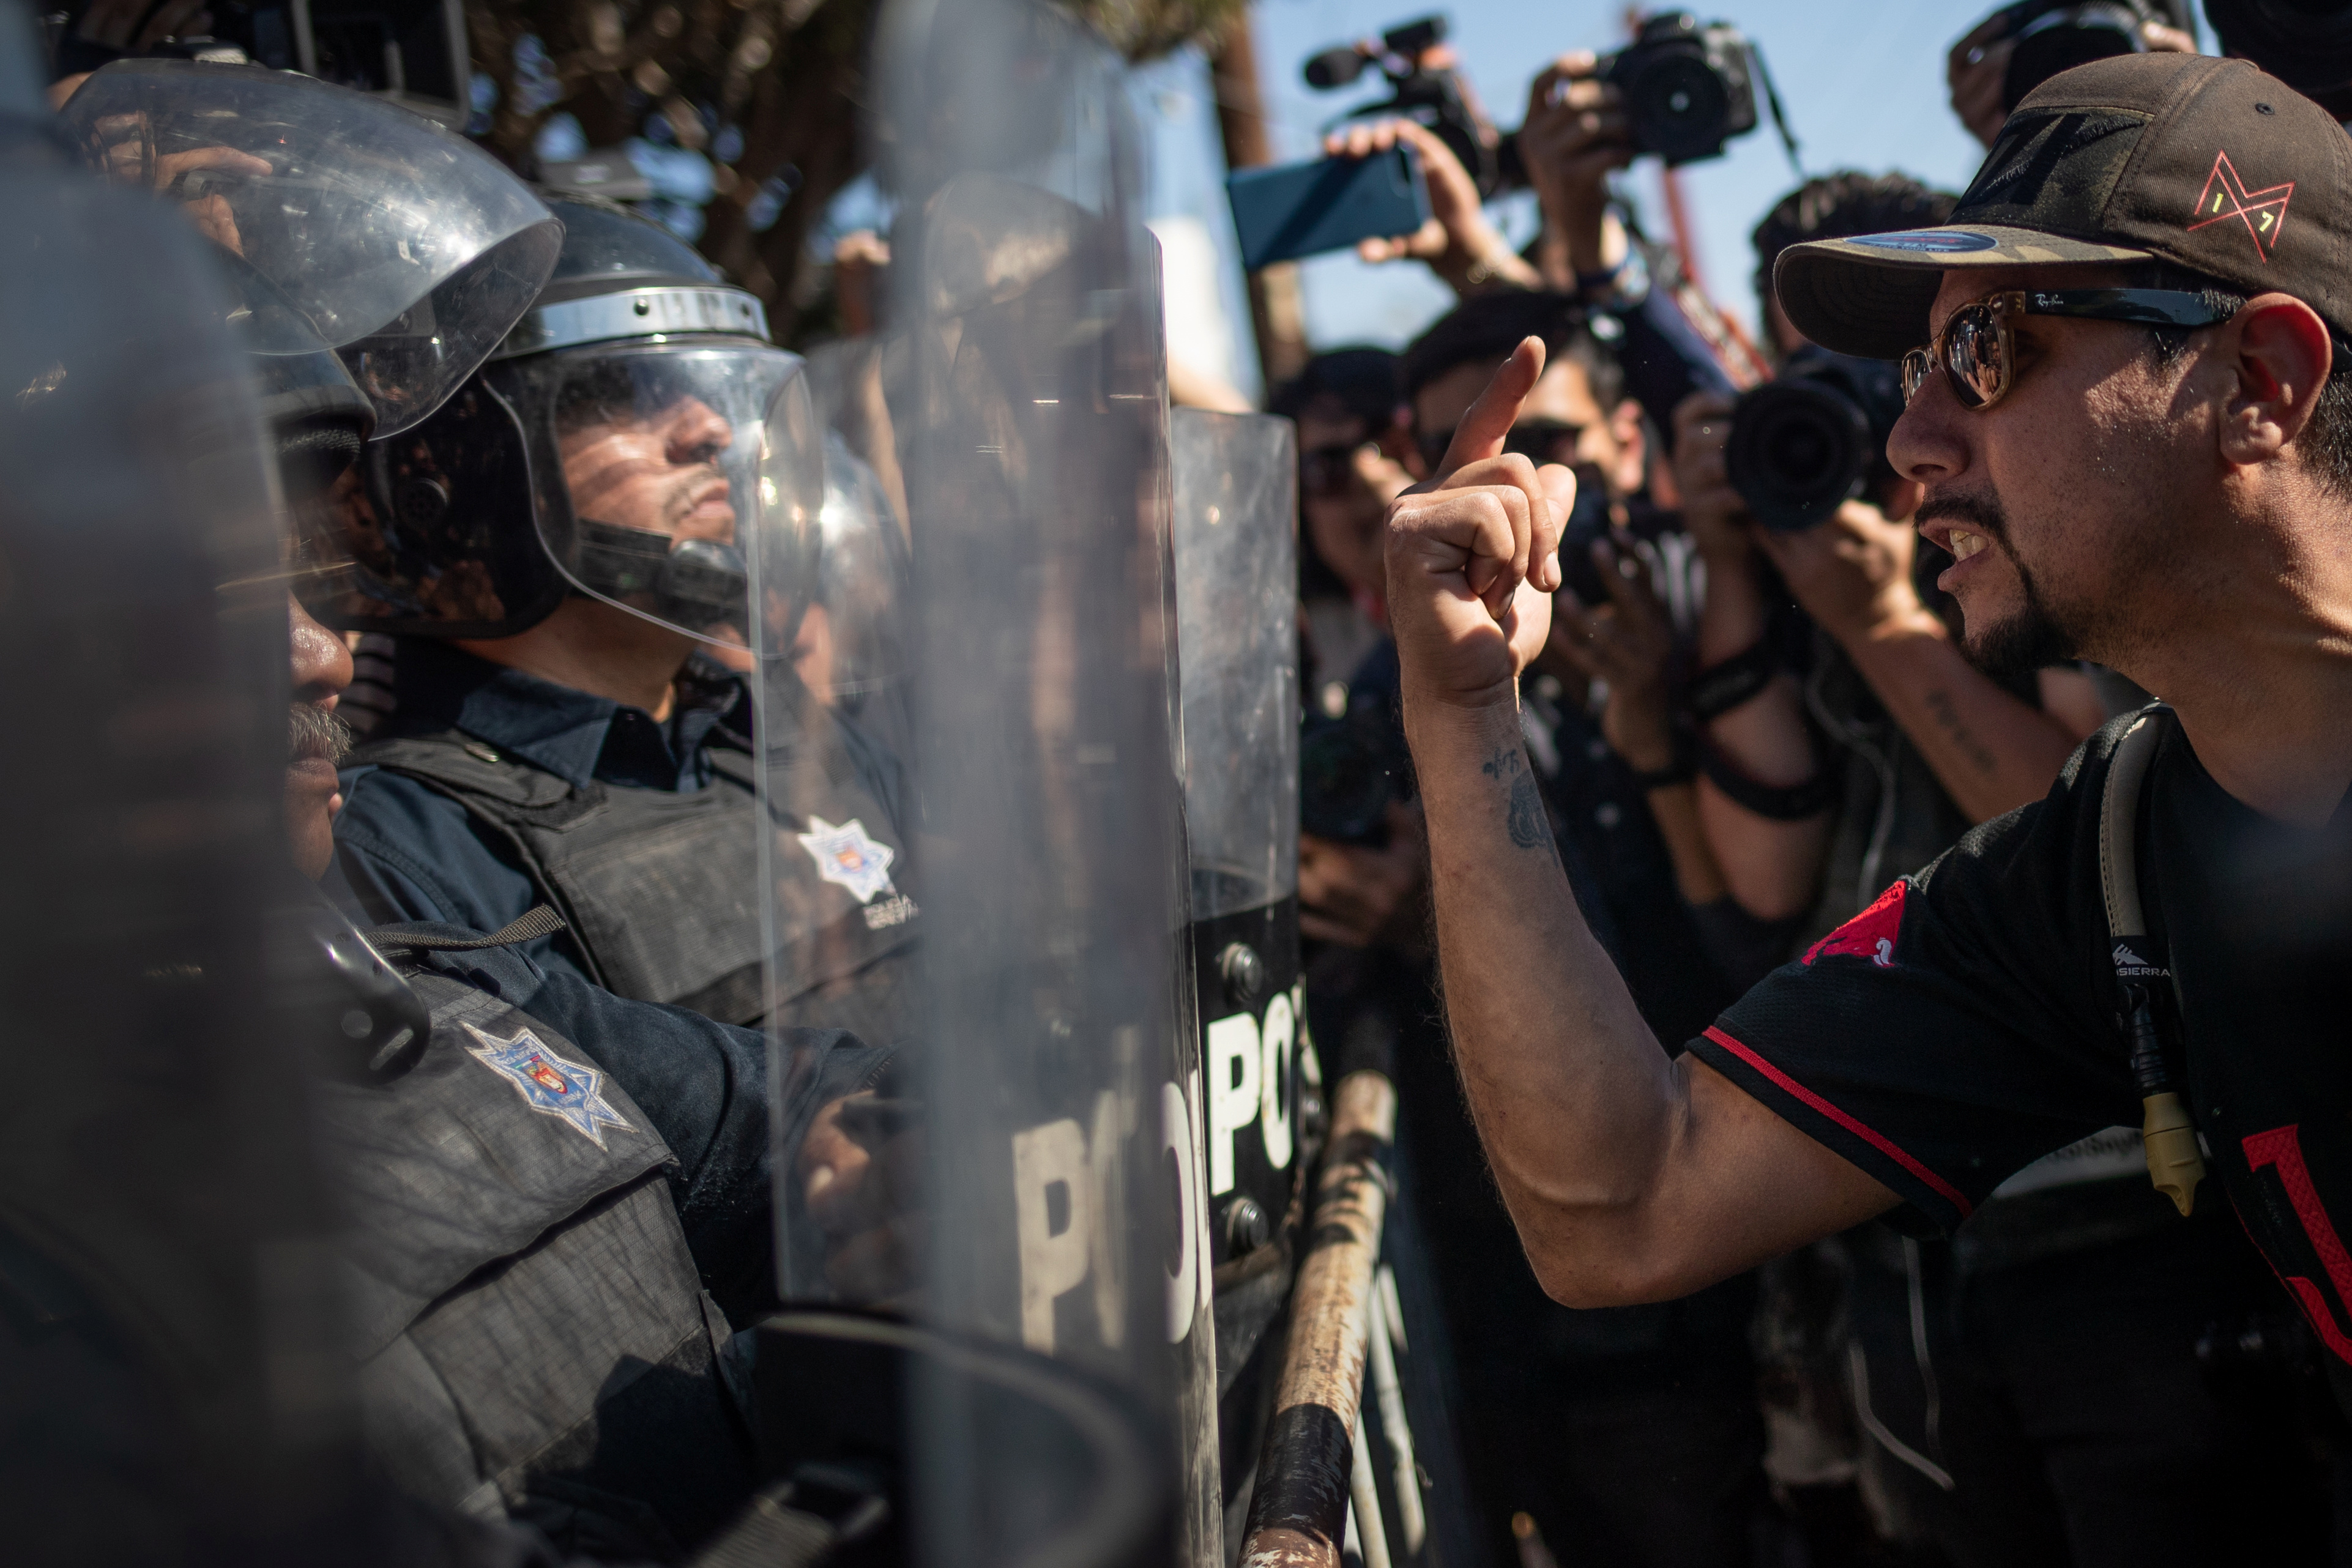 A demonstrator, part of a protest march against migrants, shouts towards a line of police in riot gear who were standing guard over a temporary shelter housing a caravan from Central America trying to reach the U.S., in Tijuana, Mexico, Nov. 18, 2018...